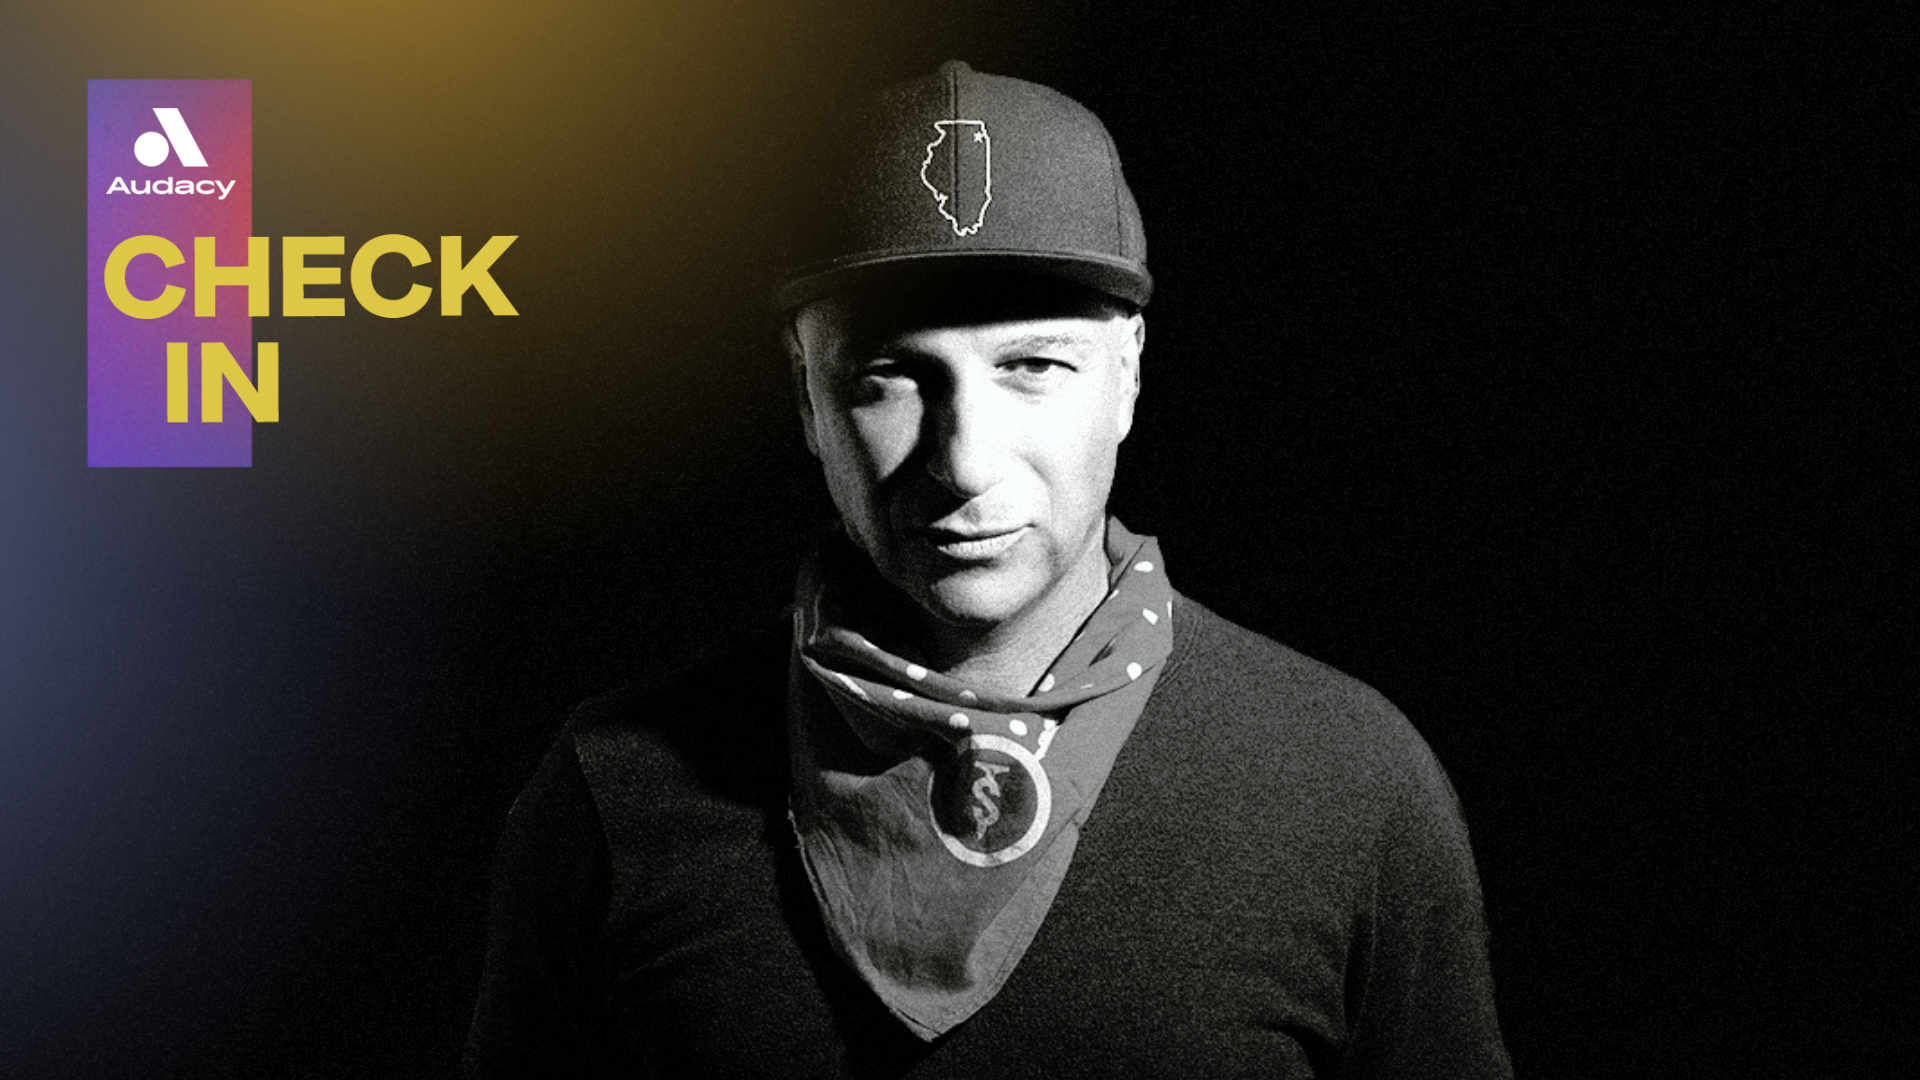 Watch our Audacy Check In with Tom Morello